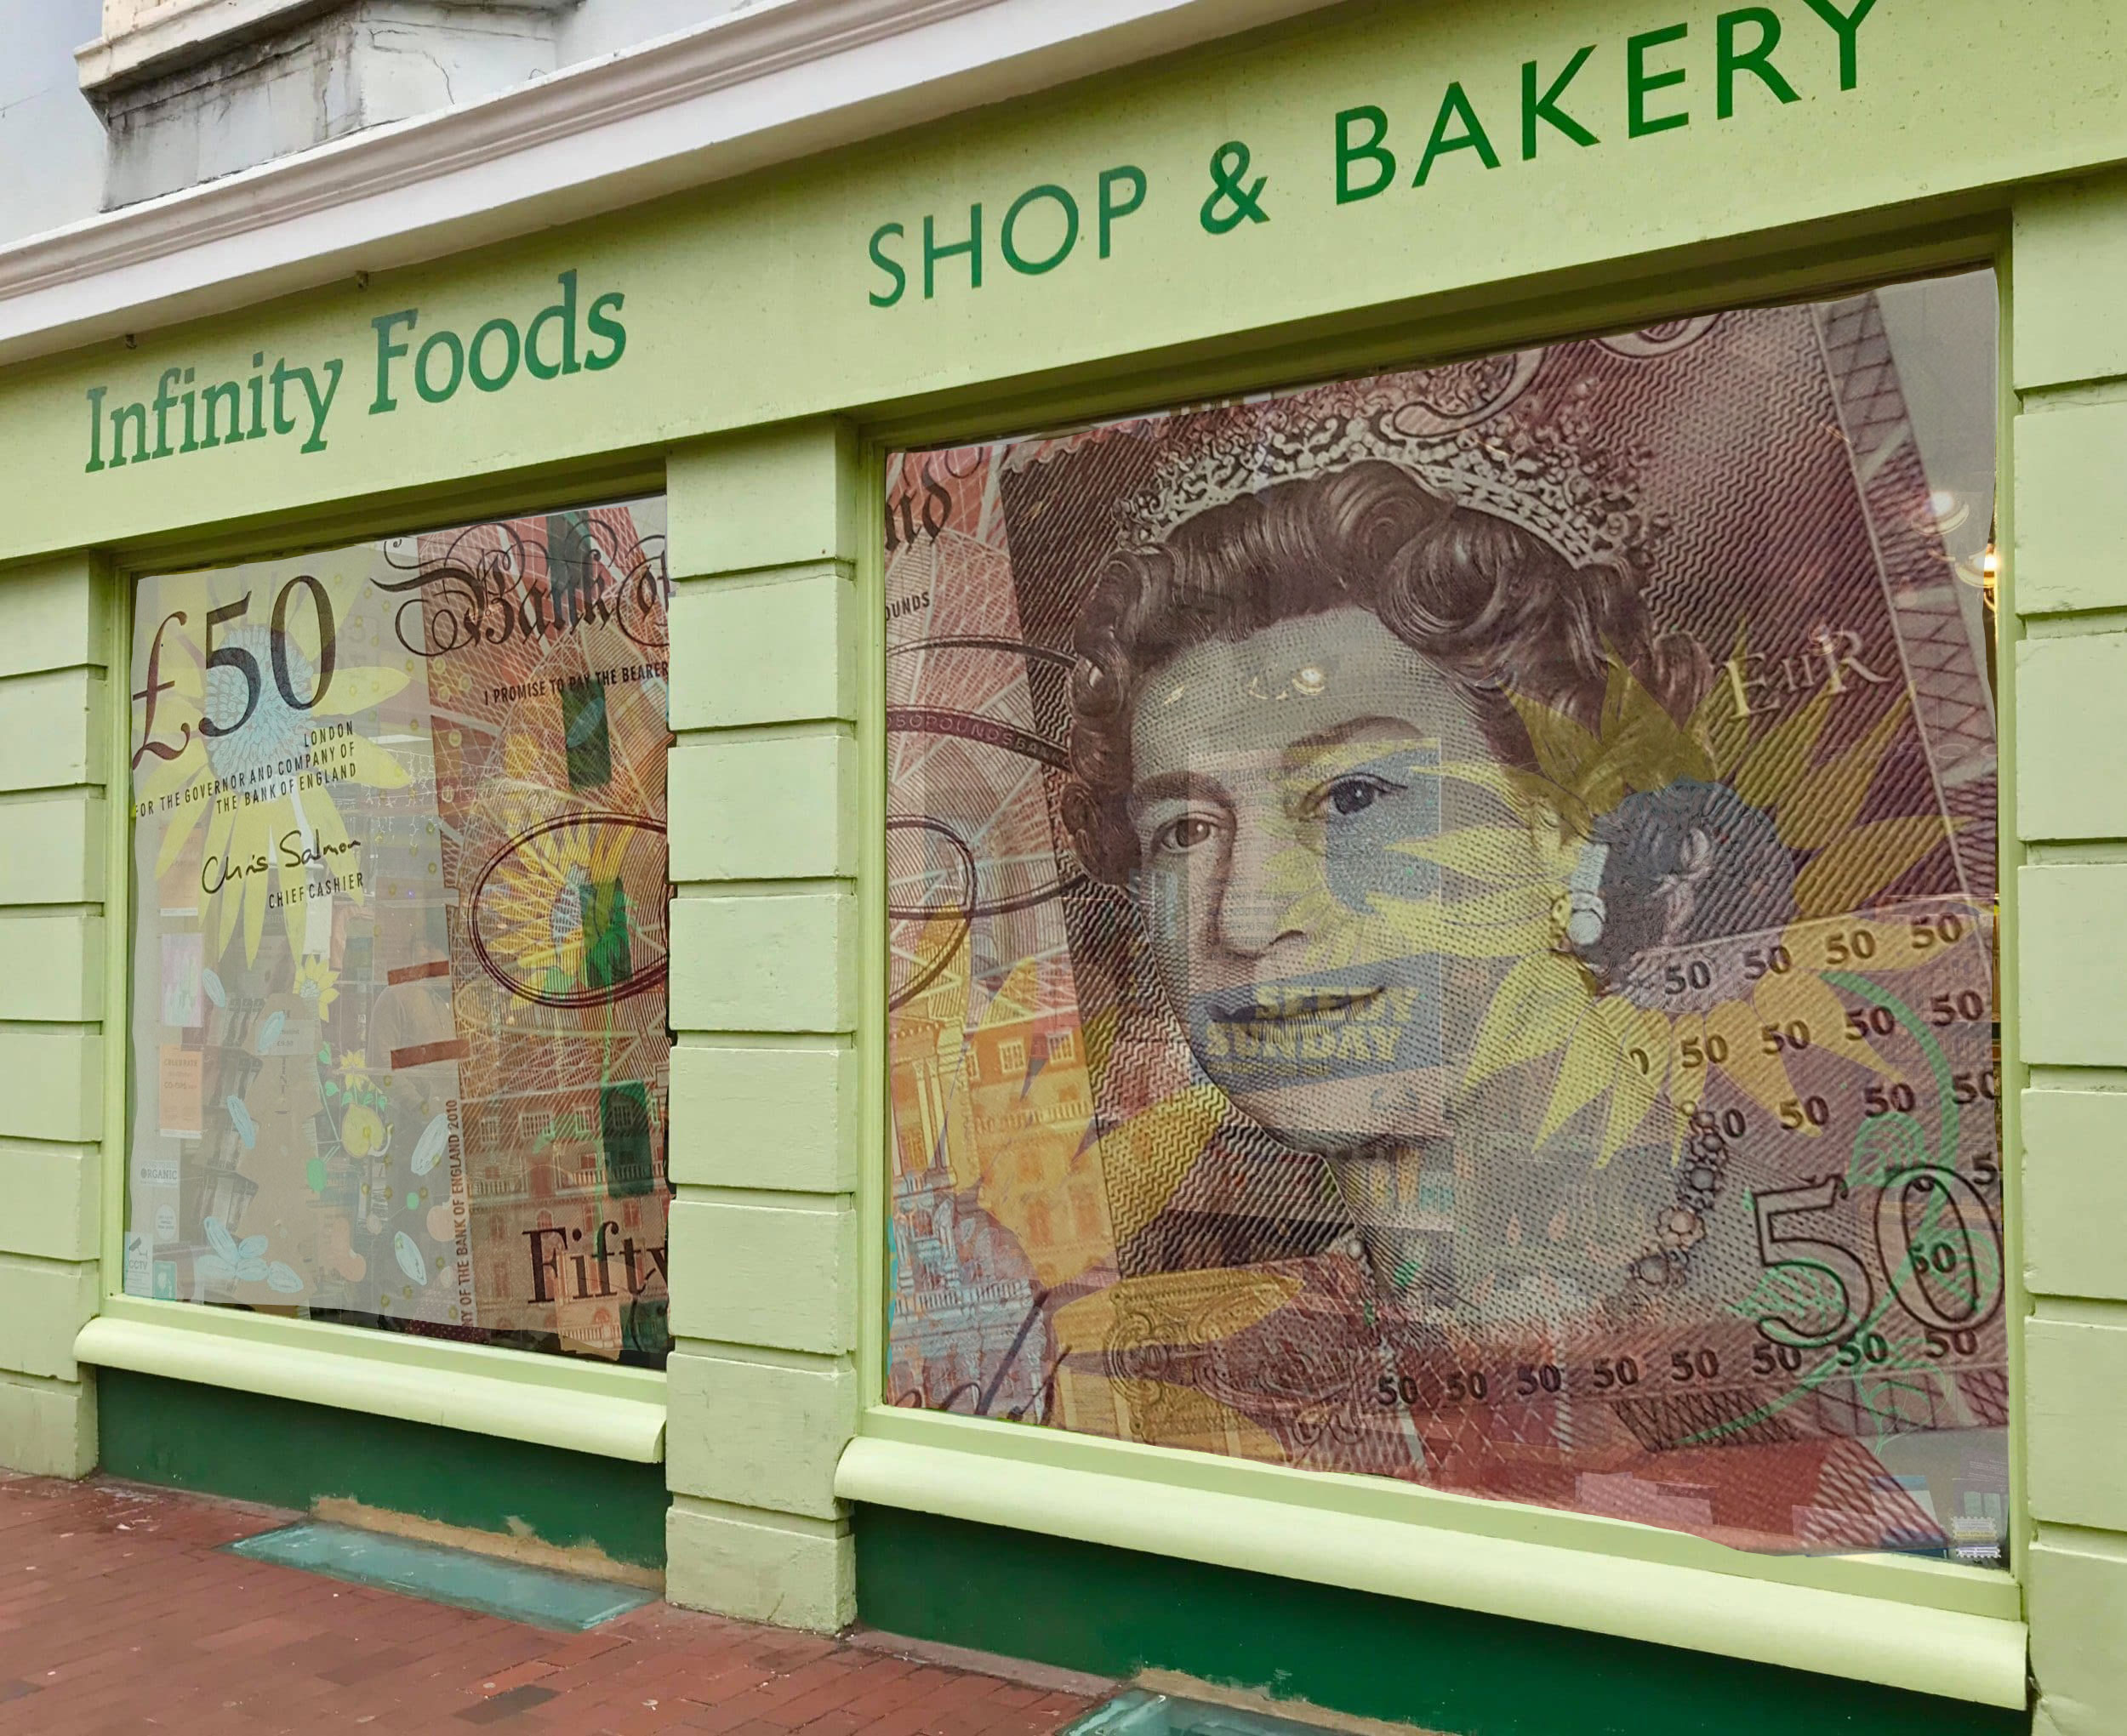 image of shop with £50 note super imposed in window